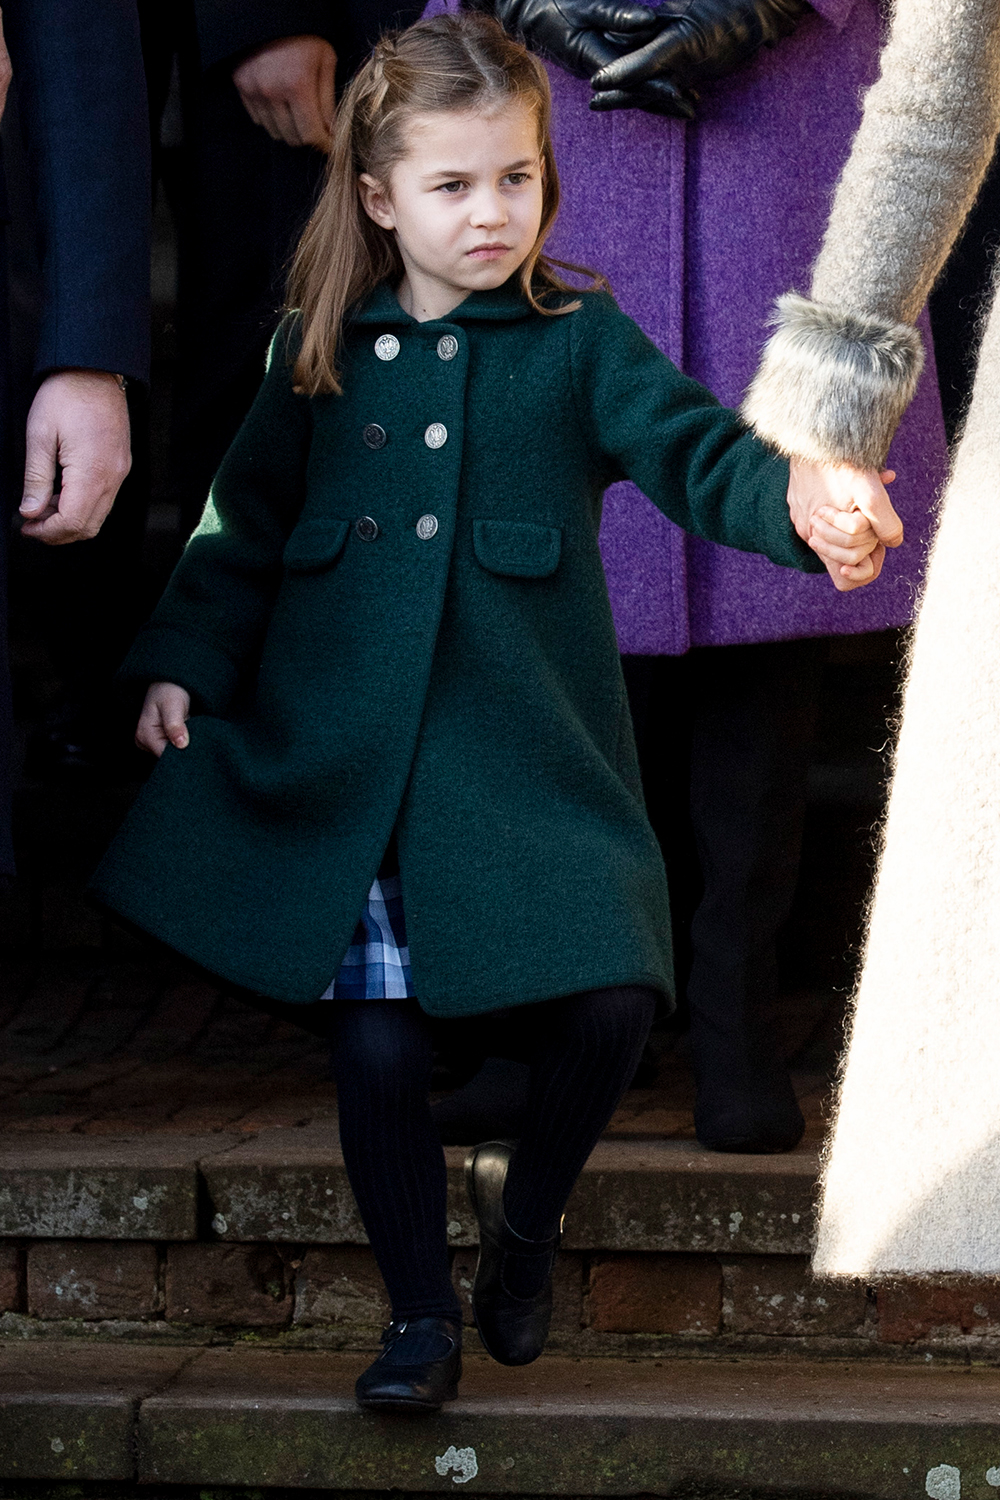 KING'S LYNN, ENGLAND - DECEMBER 25: Princess Charlotte of Cambridge attempts a curtsey to the Queen at the Christmas Day Church service at Church of St Mary Magdalene on the Sandringham estate on December 25, 2019 in King's Lynn, United Kingdom. (Photo by Mark Cuthbert/UK Press via Getty Images)